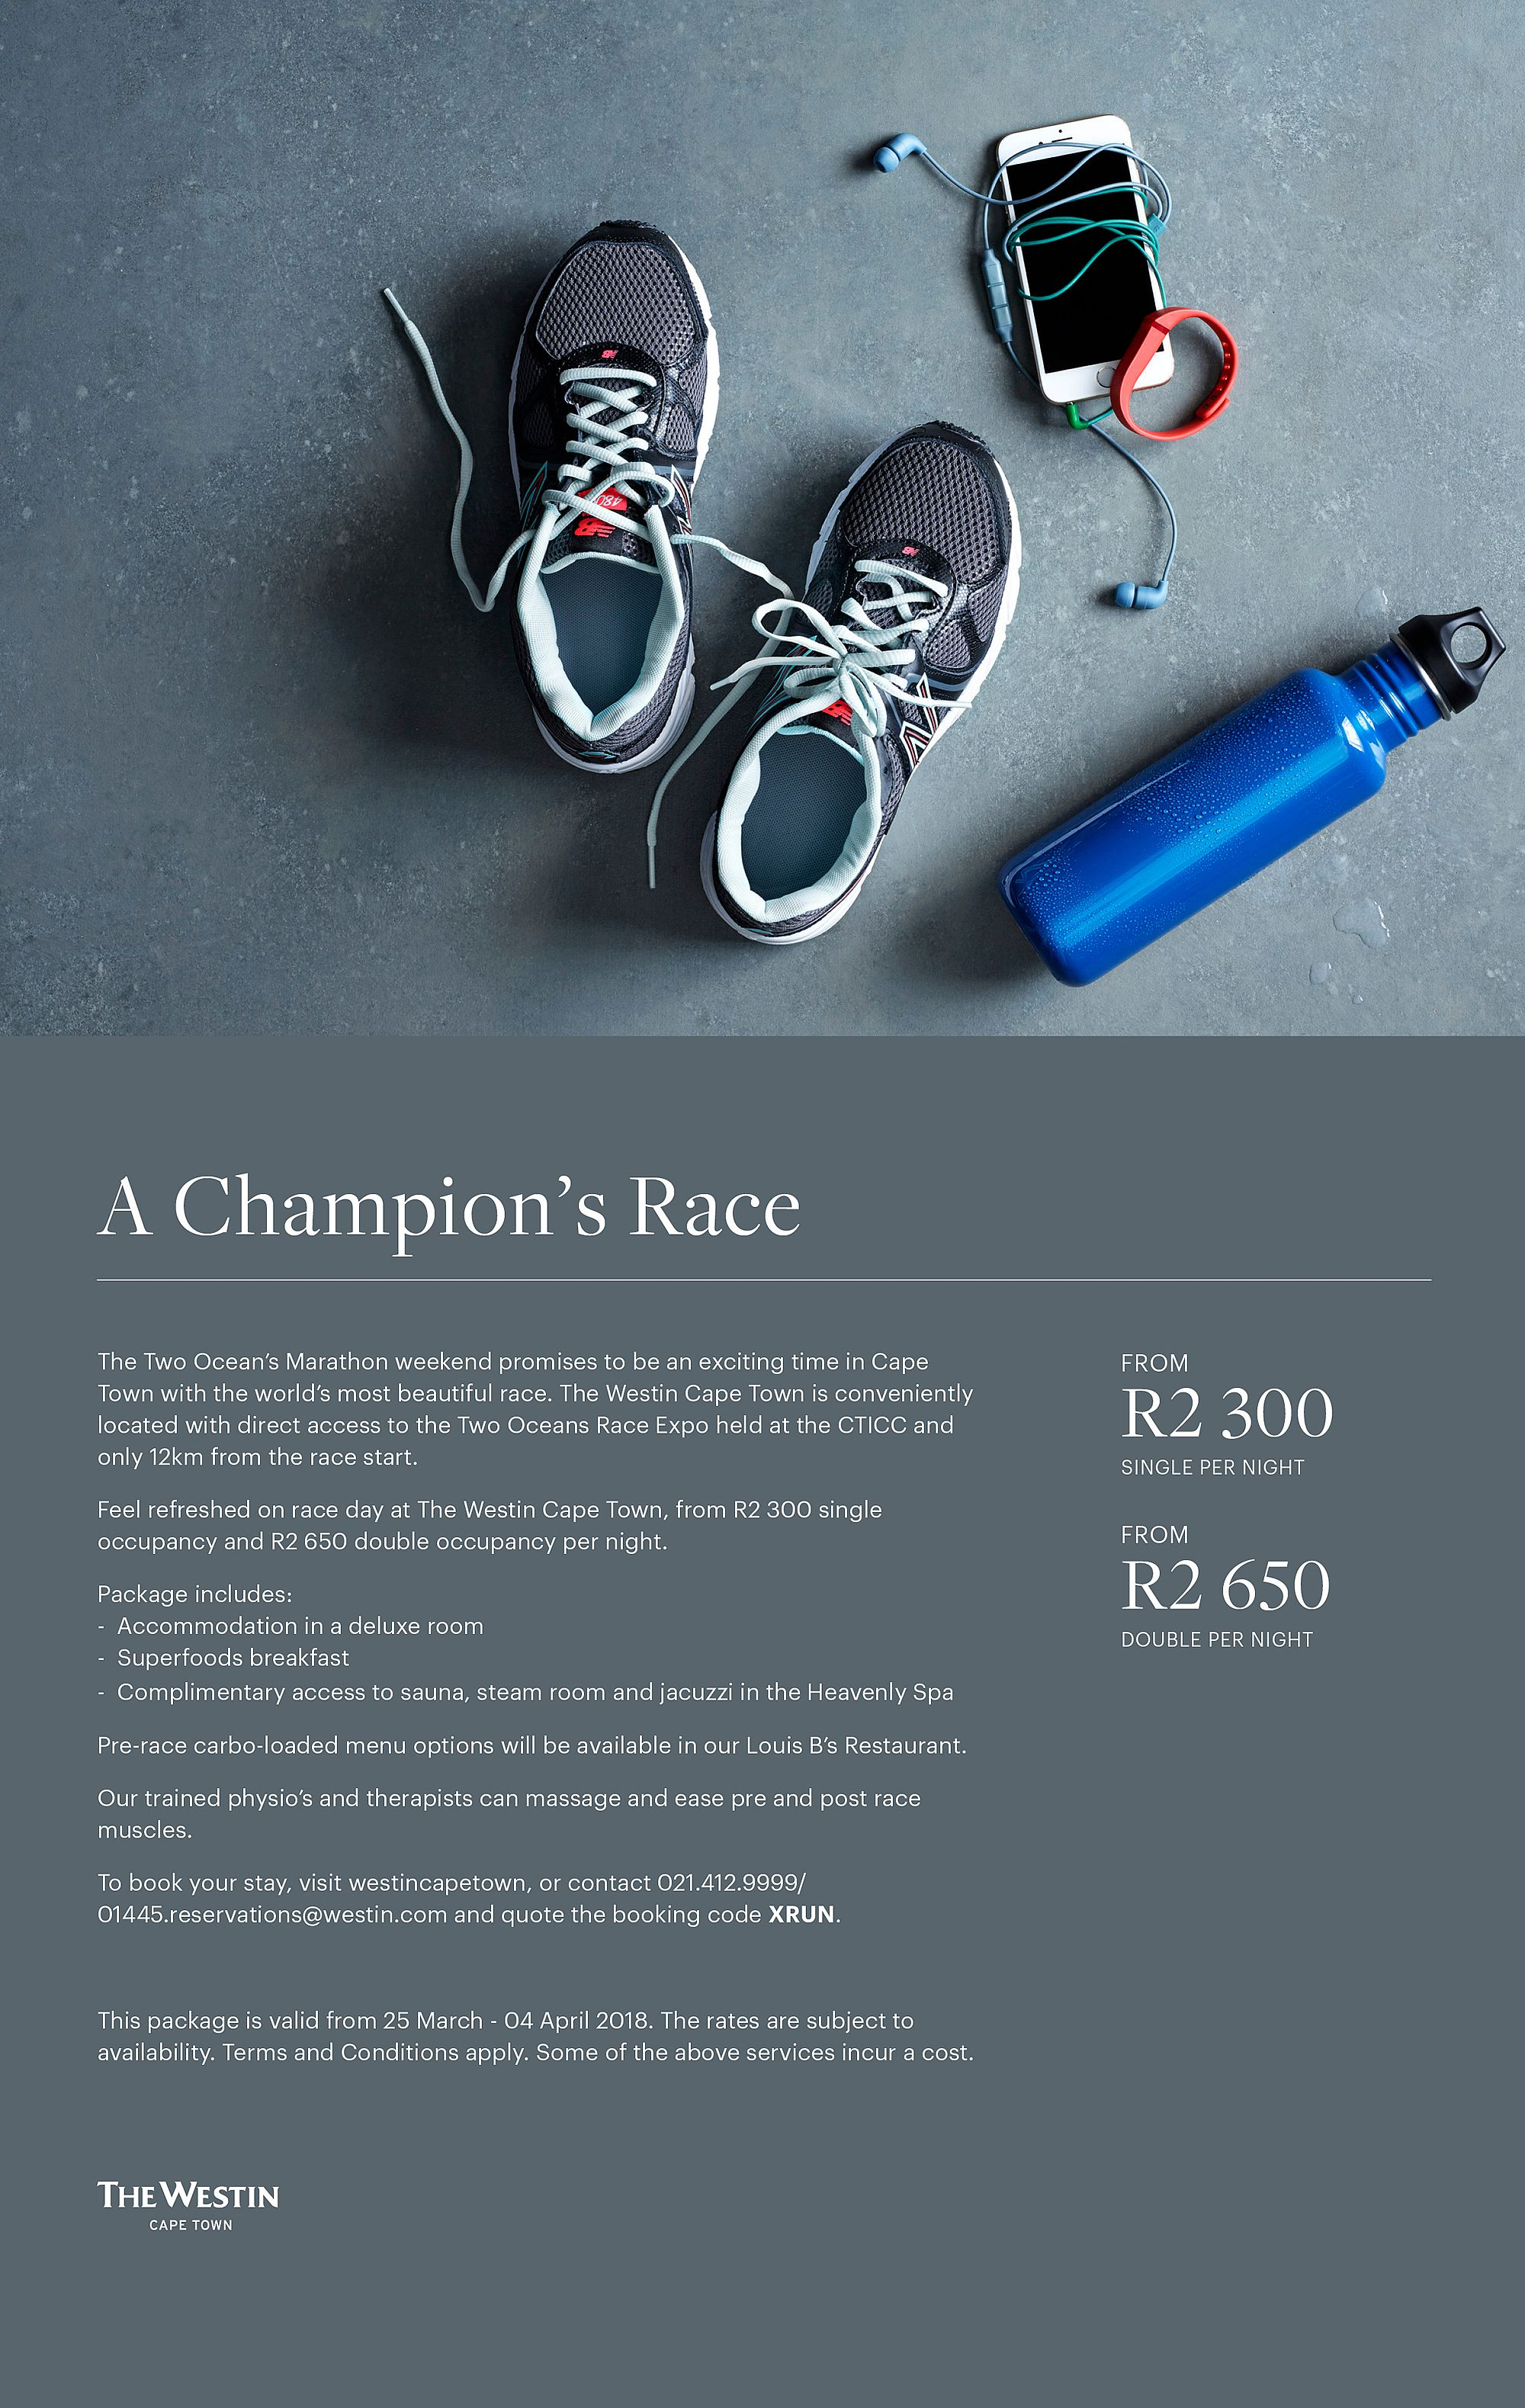 Flyer with image of shoes, iPod and Water bottle with details on Accommodation Offer